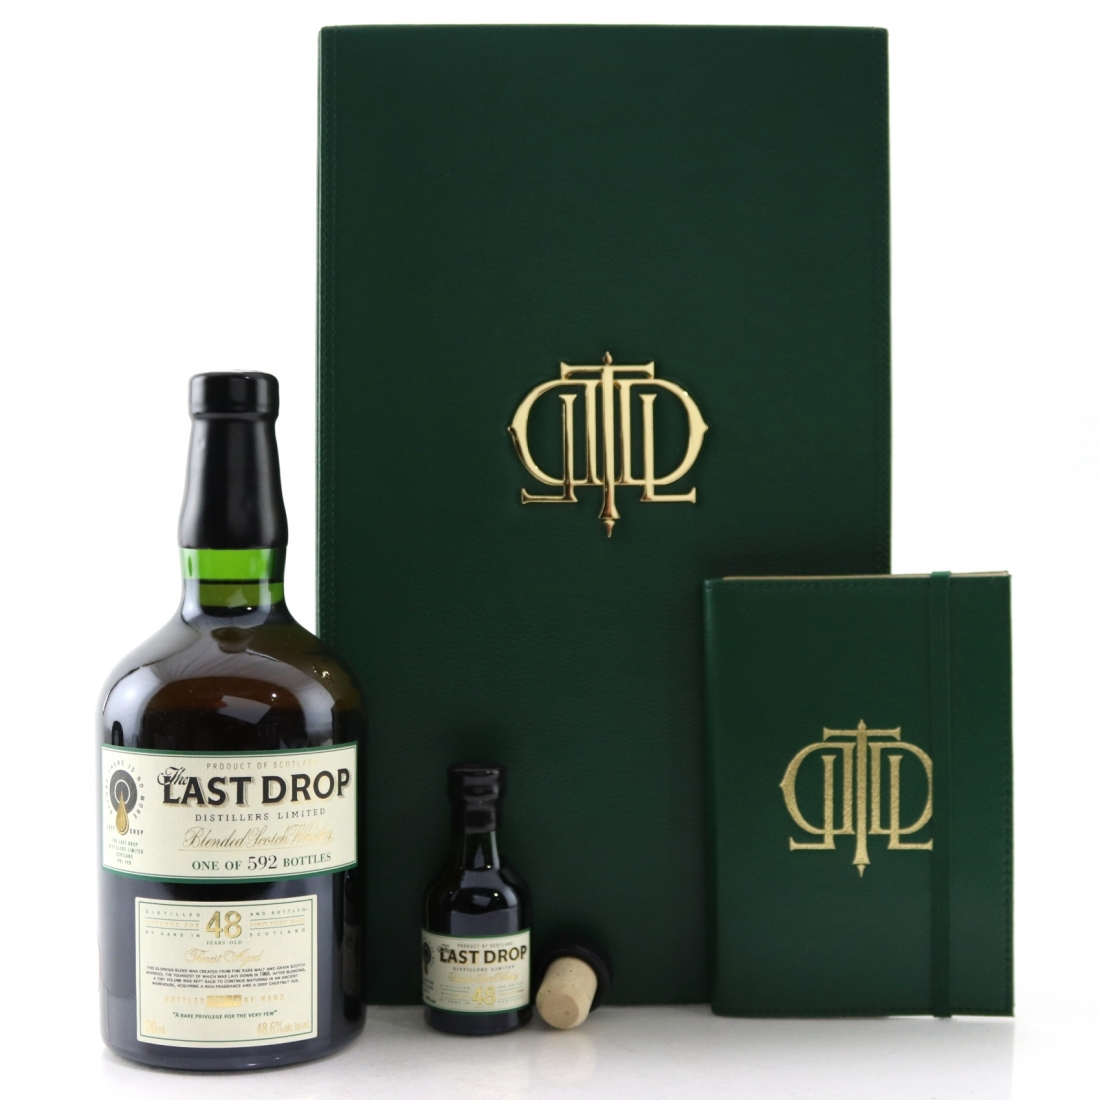 The Last Drop 48 Year Old Blend / with Miniature 5cl